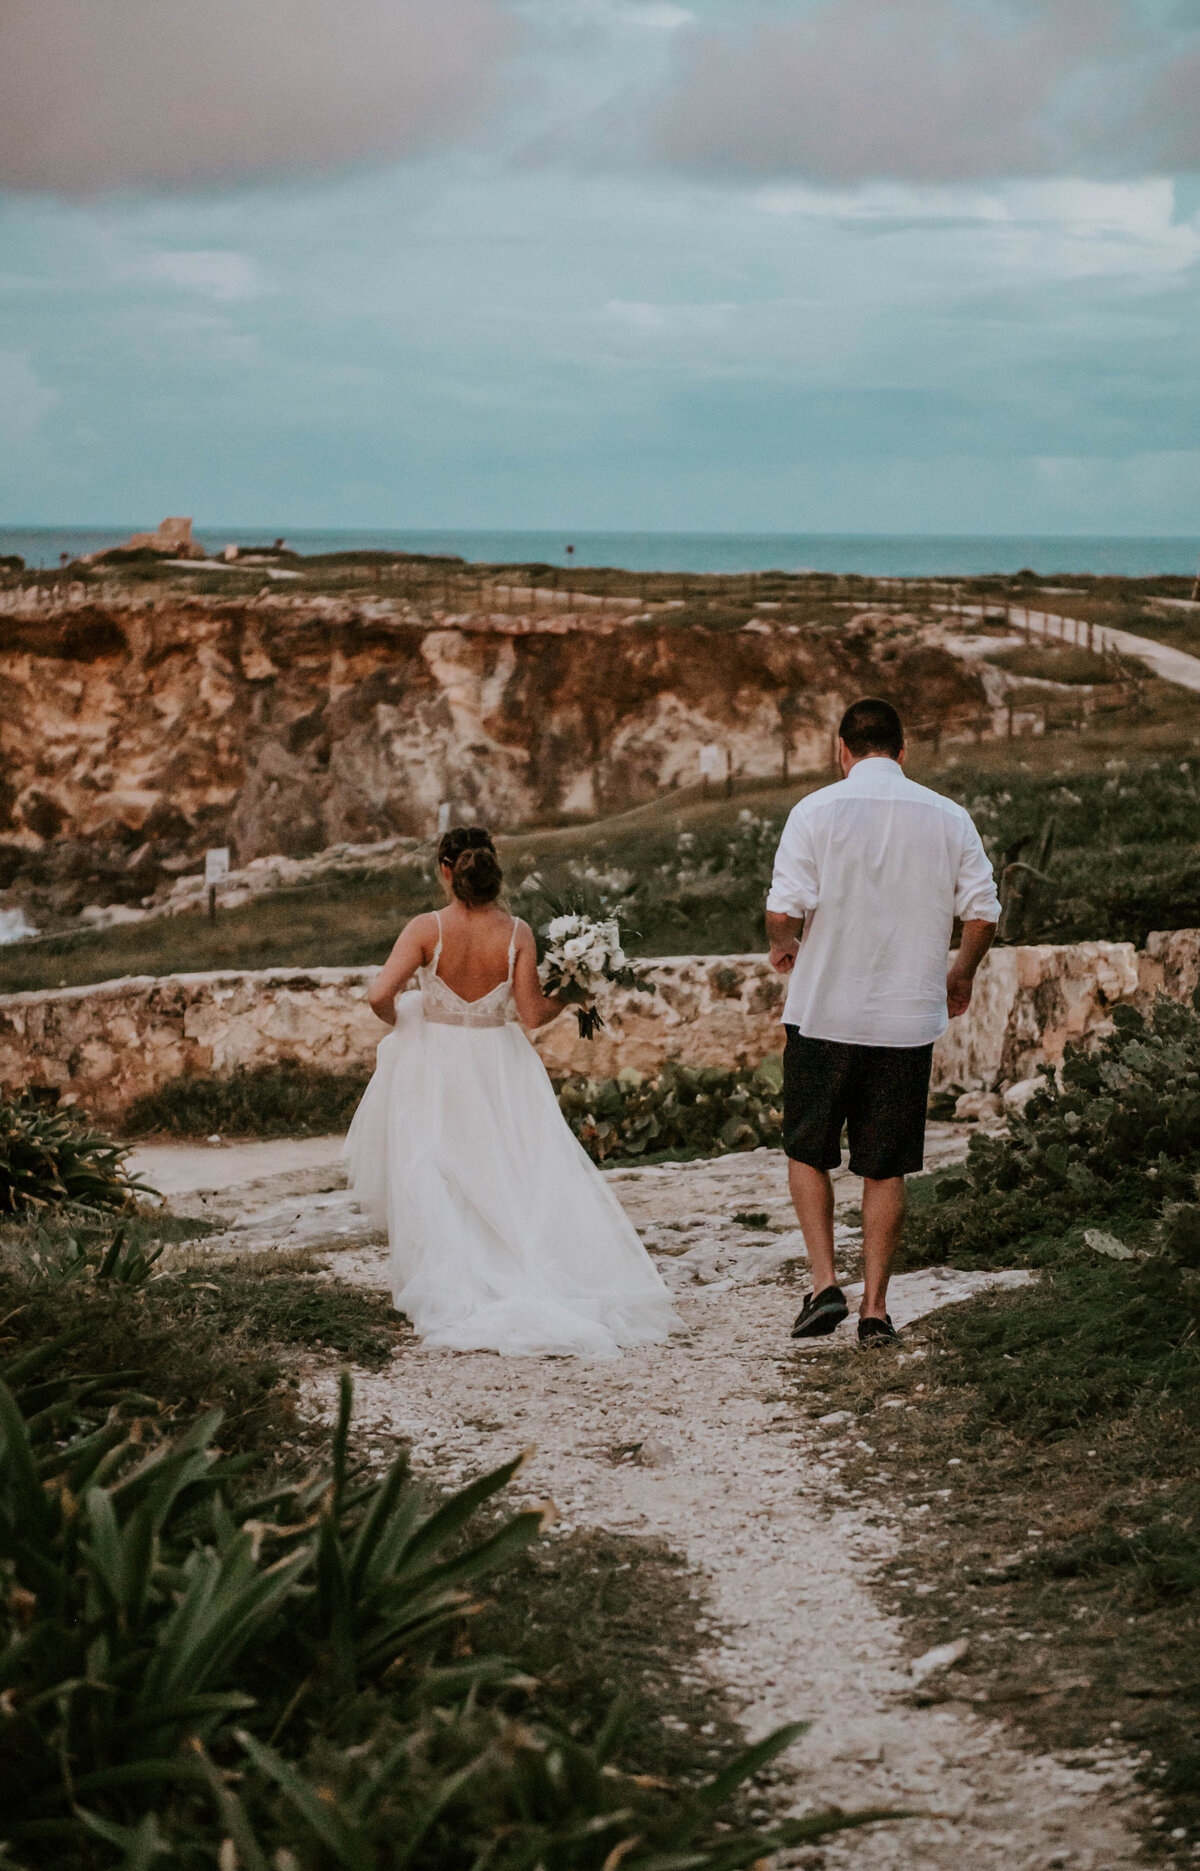 isla-mujeres-wedding-photographer-guthrie-zama-mexico-tulum-cancun-beach-destination-1516